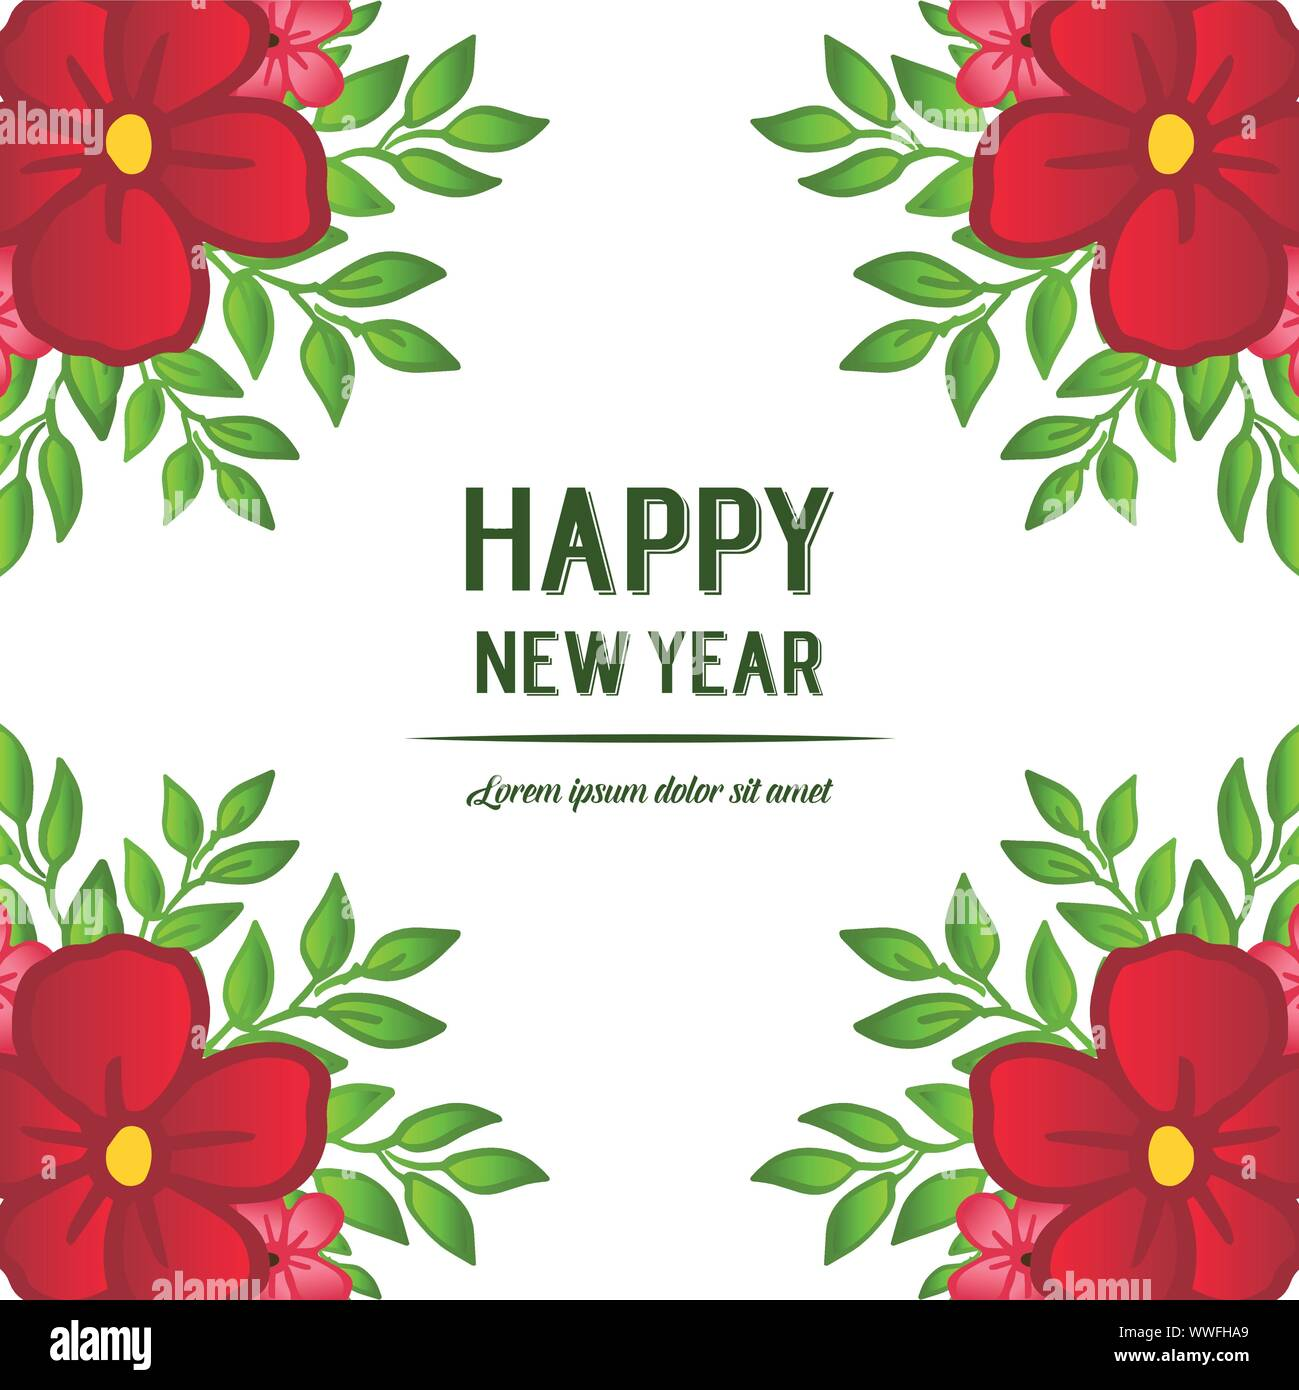 Happy new year greeting card template, with drawing of ...